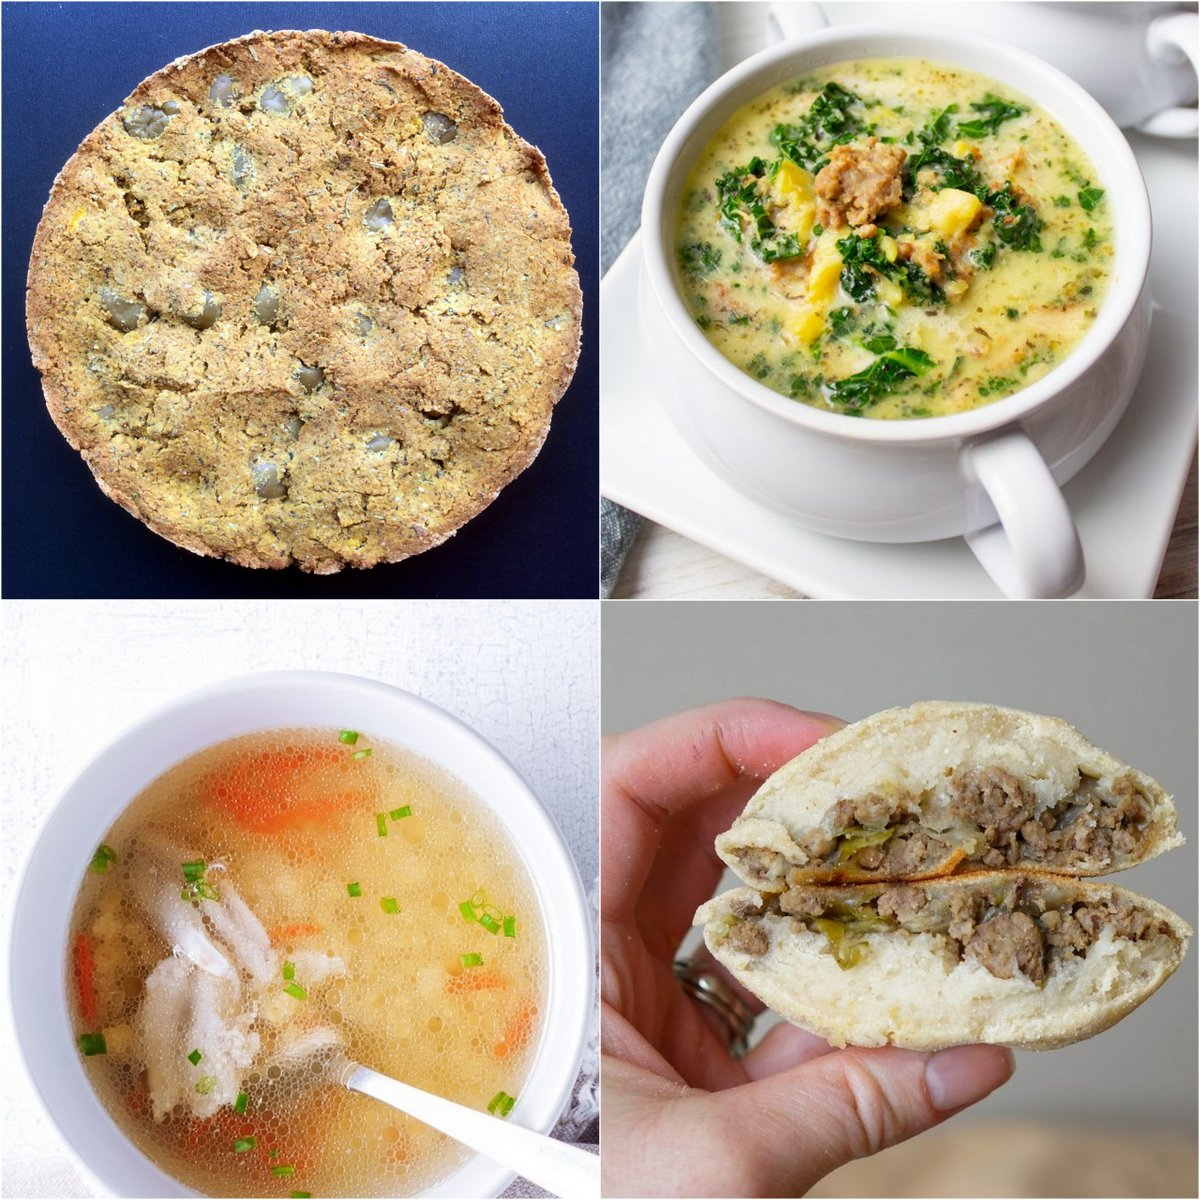 Paleo AIP Recipe Roundtable #360   Phoenix Helix - *Featured Recipes: Olive Fougasse Bread, 6-Ingredient Zuppa Toscana, Chicken Noodle-Less Soup, and Bierocks (German Stuffed Beef Rolls)